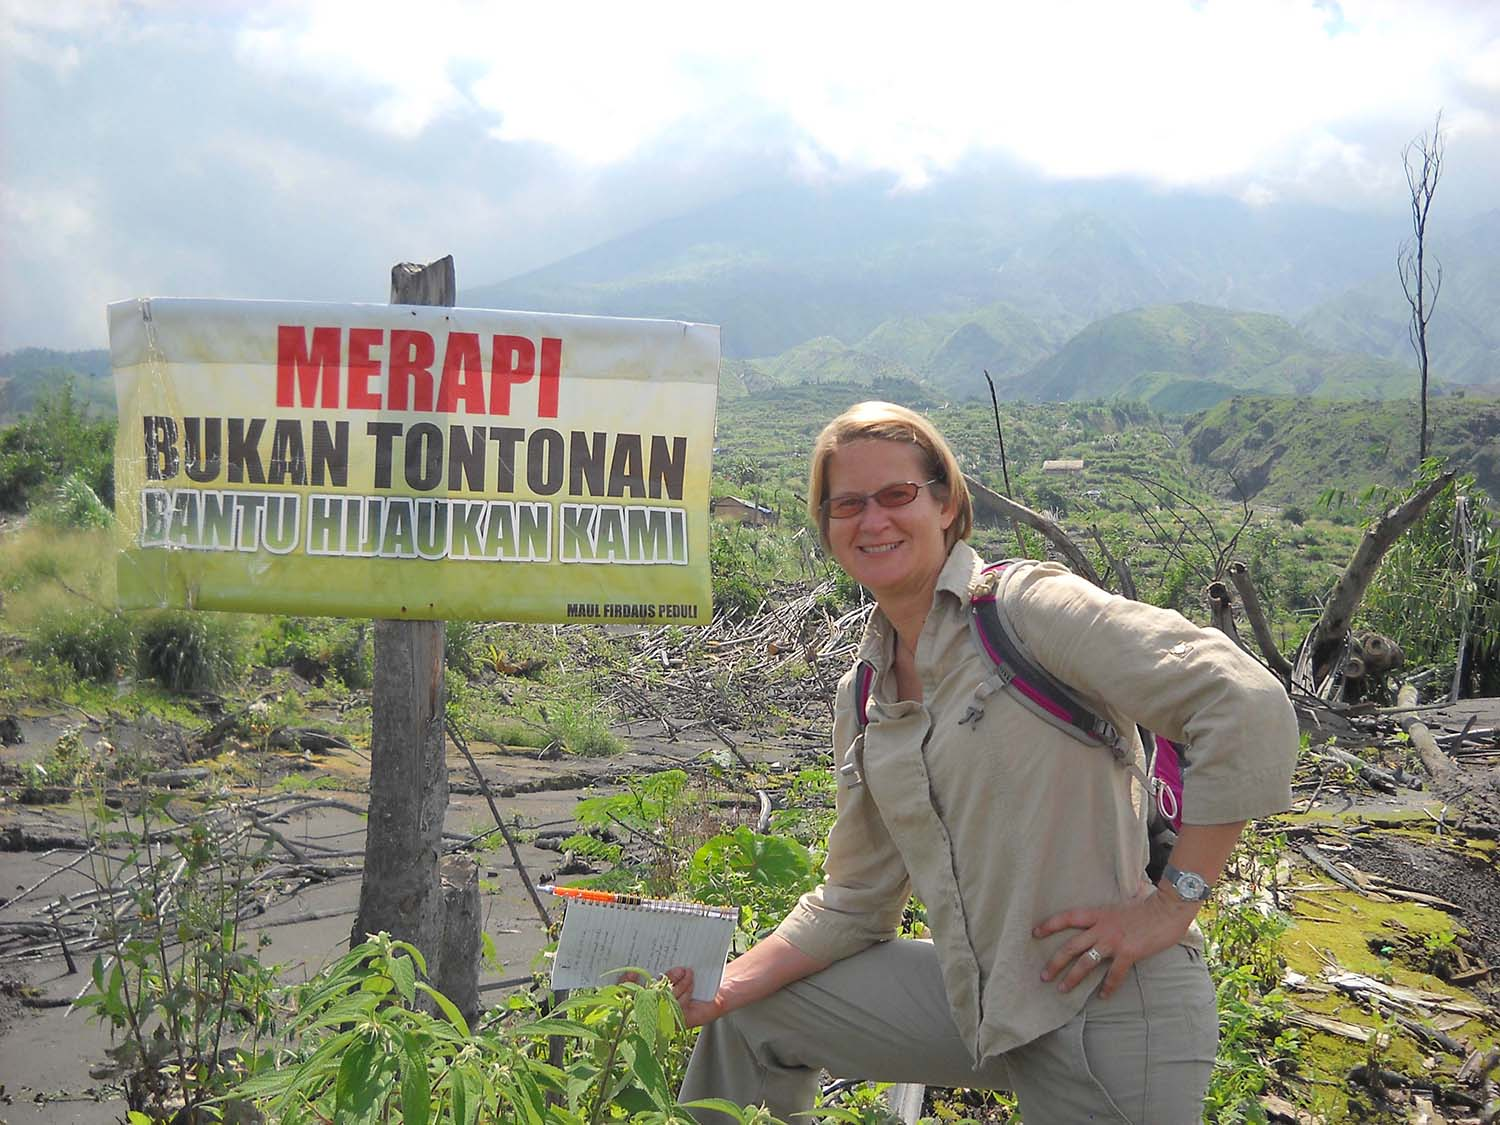 Liz with Merapi sign